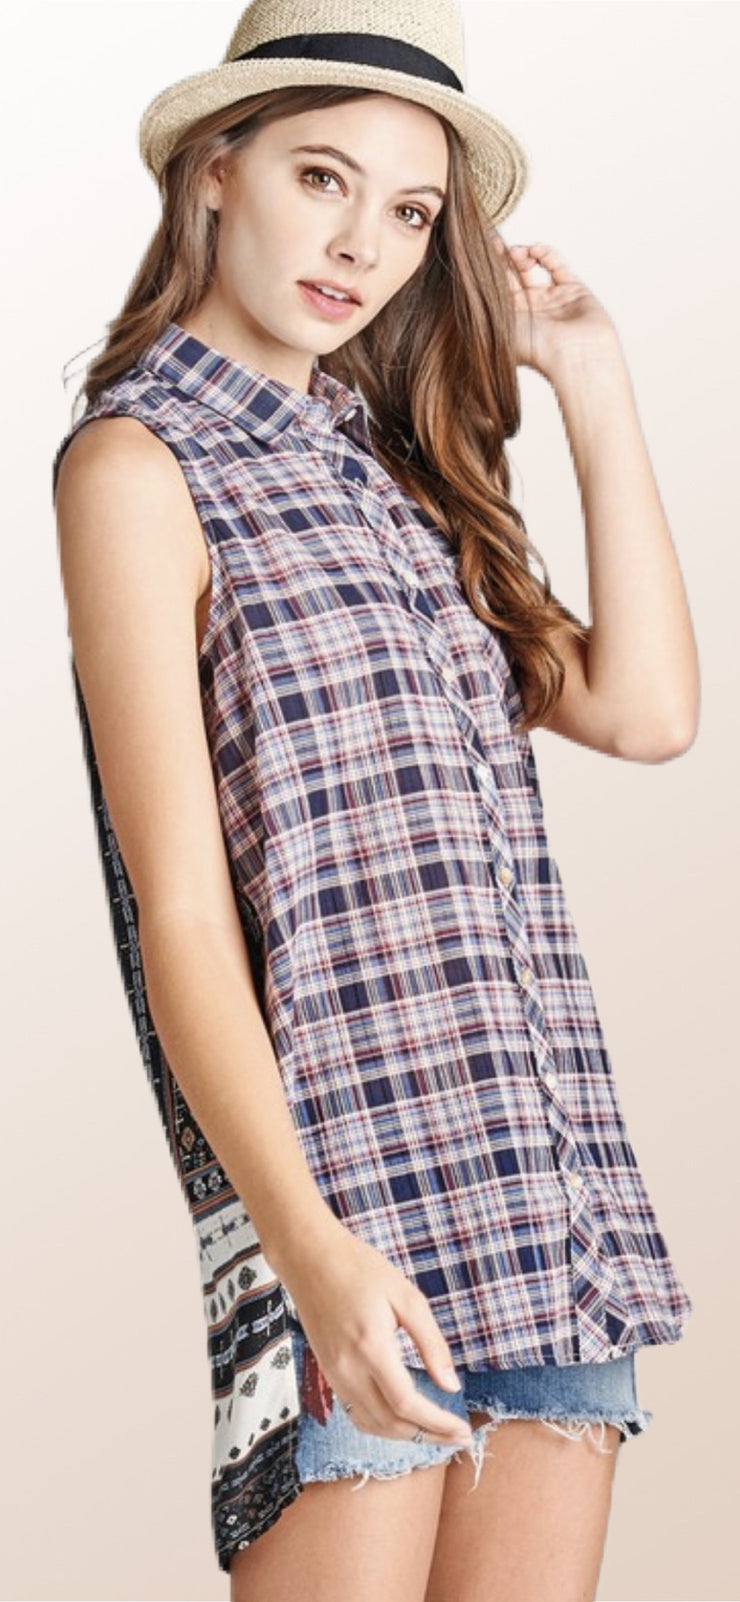 Priscilla Plaid Top - [product_style] - Tops - WILLOWTREE MARKET